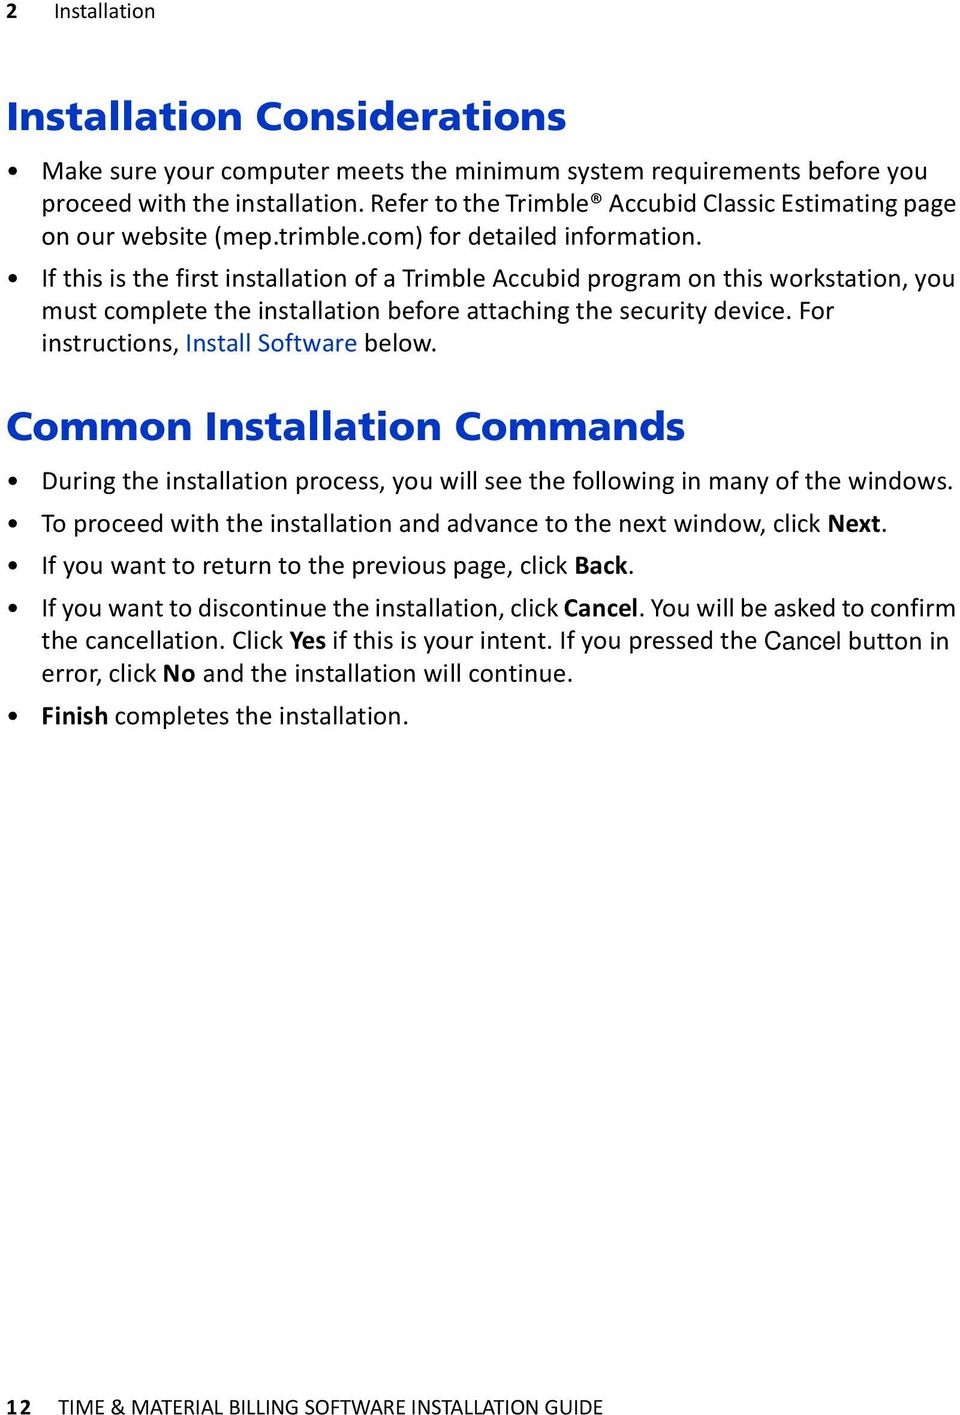 If this is the first installation of a Trimble Accubid program on this workstation, you must complete the installation before attaching the security device. For instructions, Install Software below.